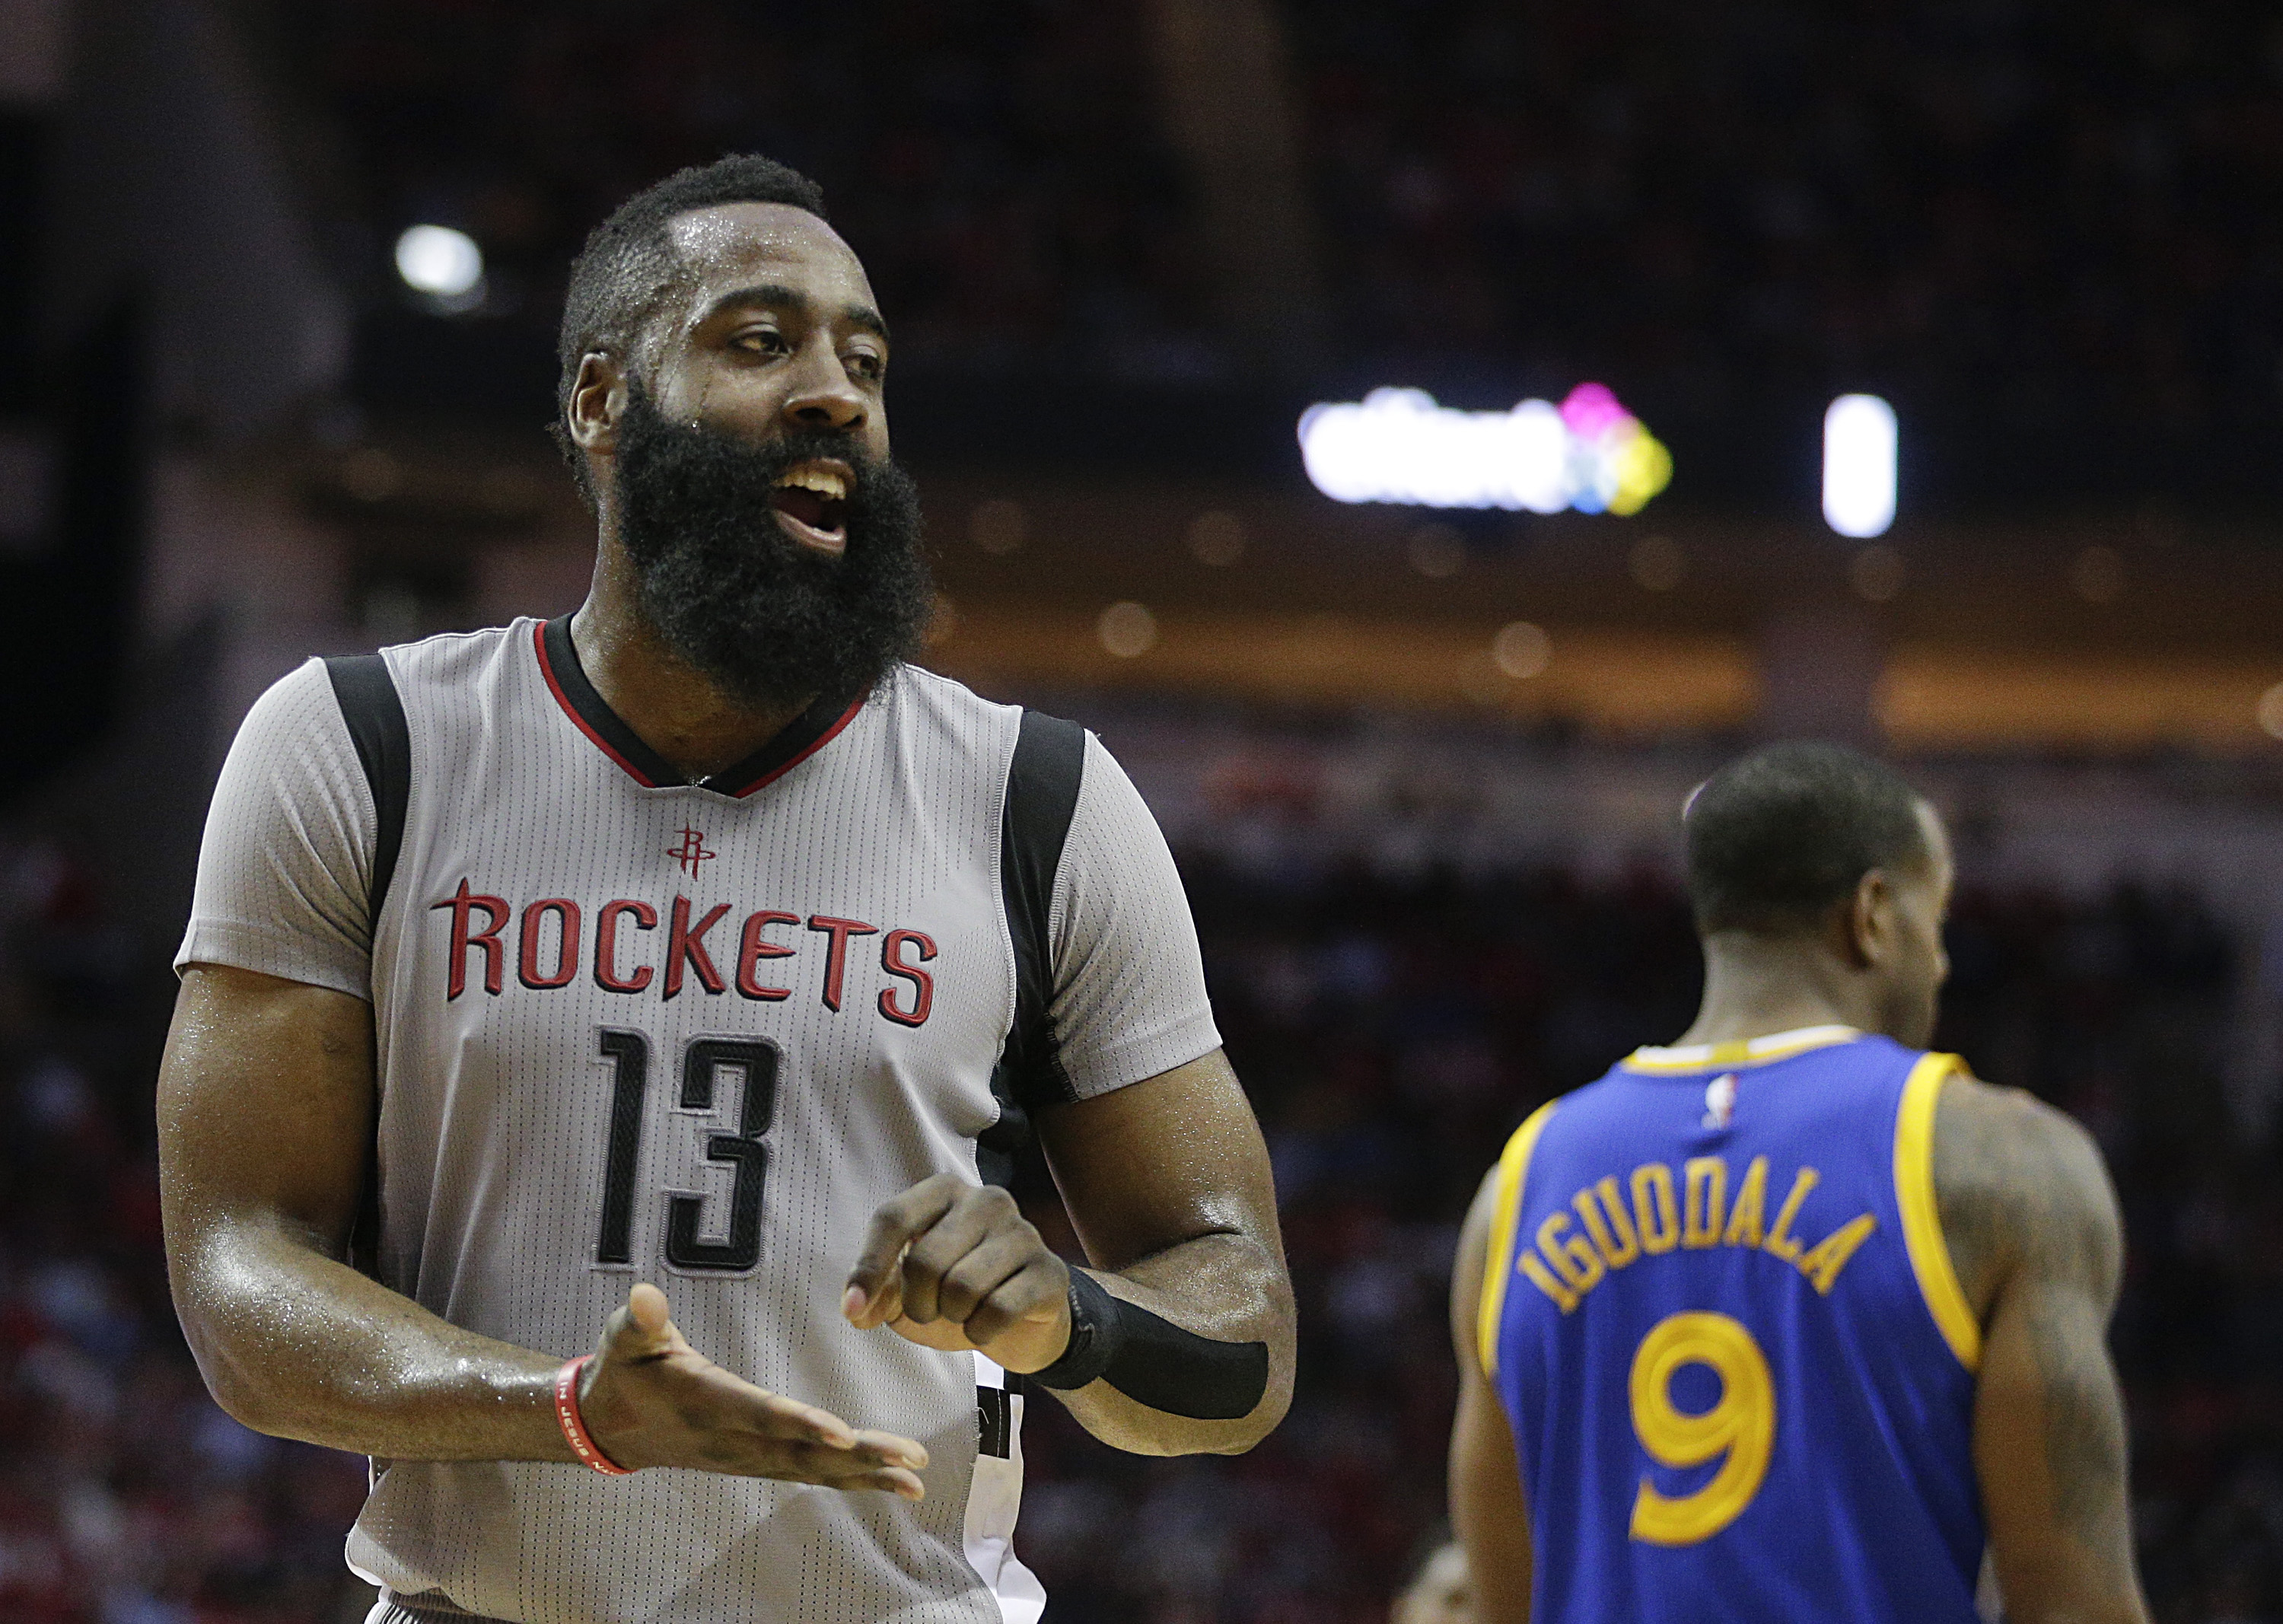 9978843-nba-golden-state-warriors-at-houston-rockets